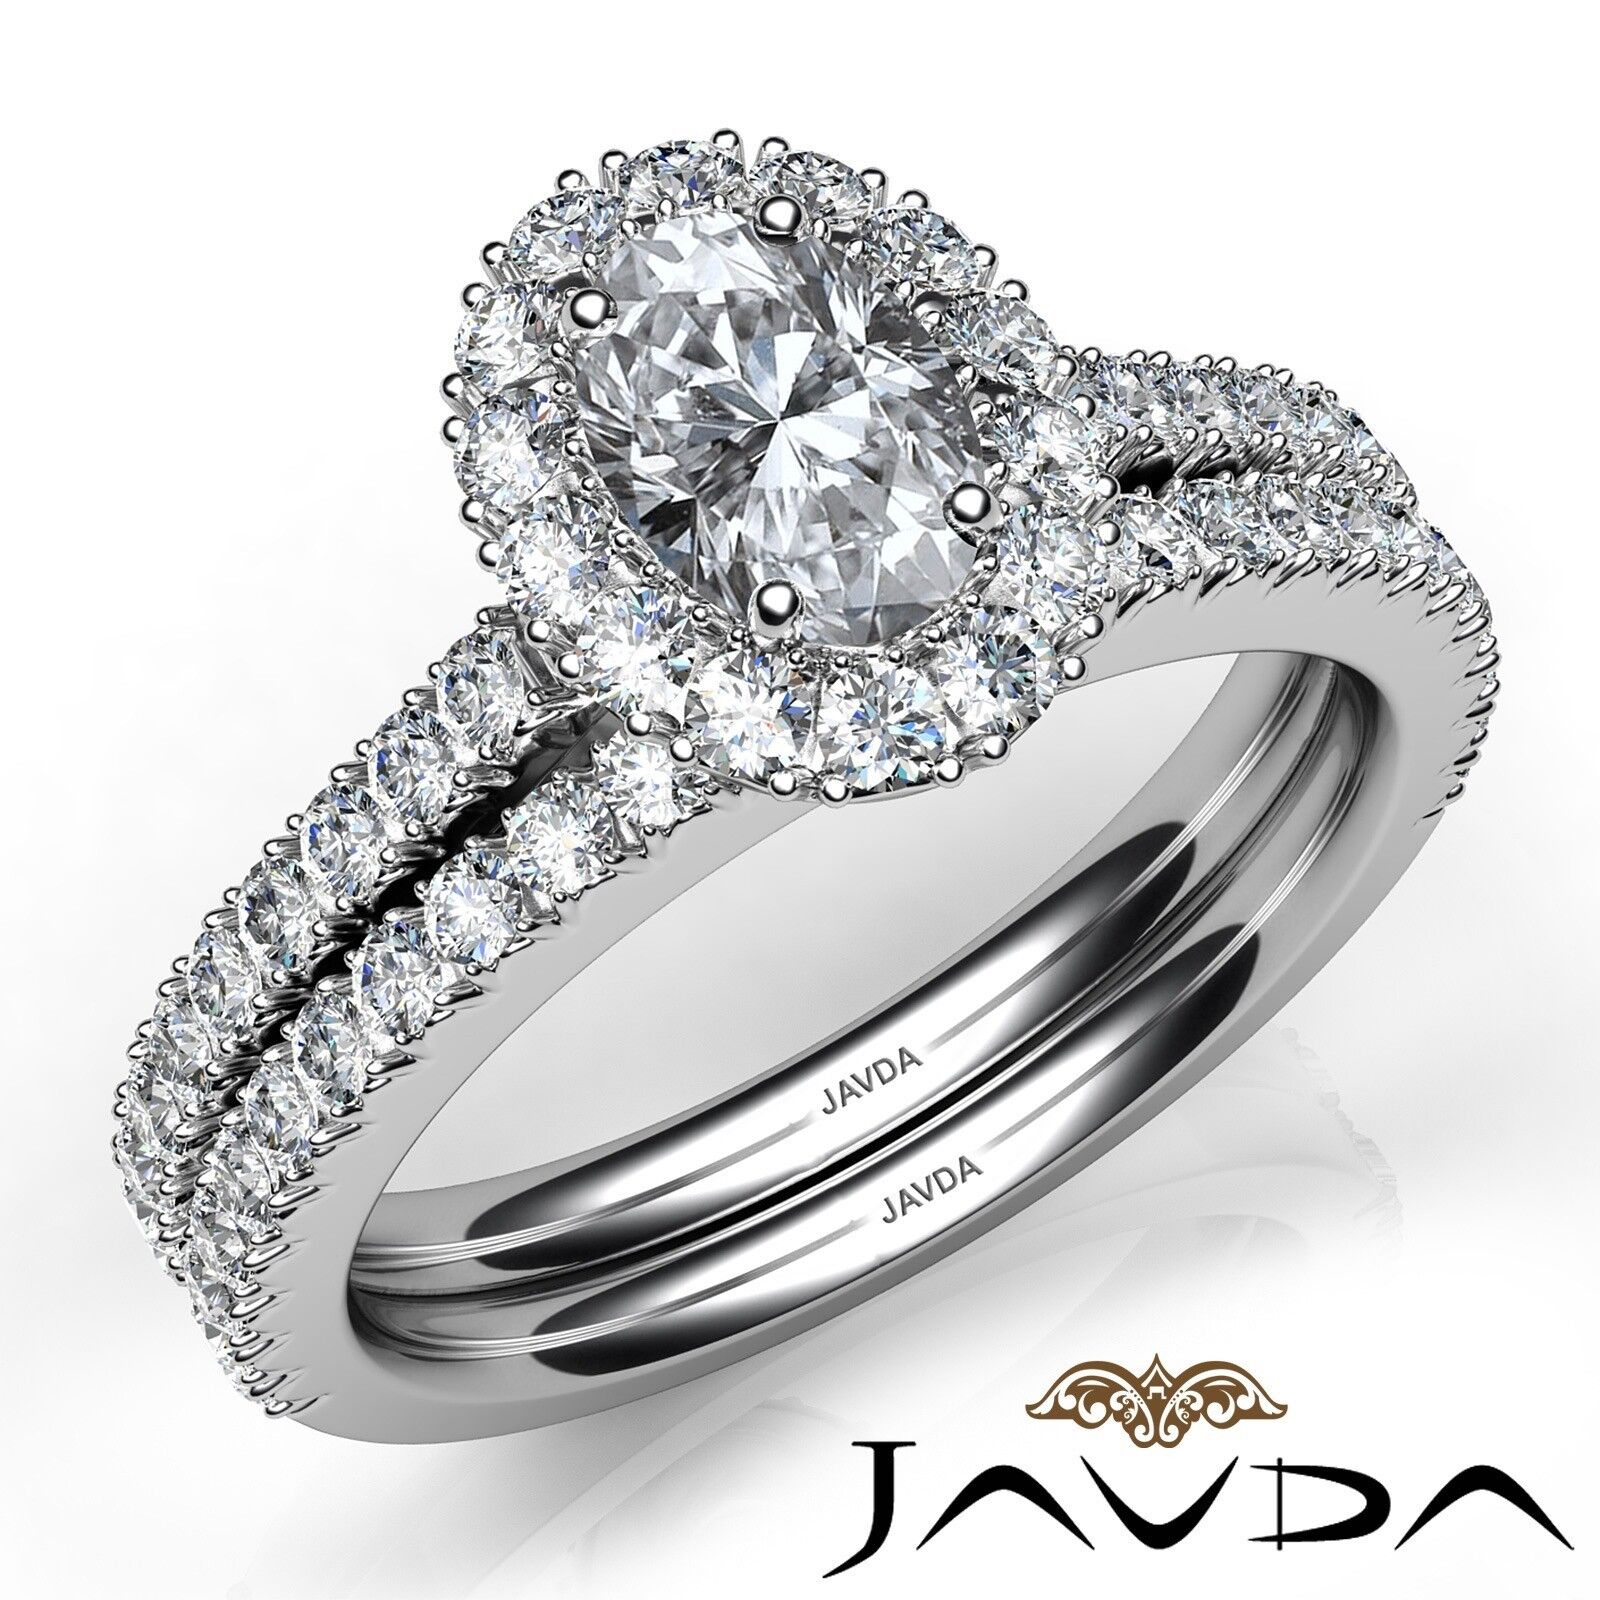 2.21ctw Halo Bridal French Pave Oval Diamond Engagement Ring GIA F-VVS2 W Gold 1